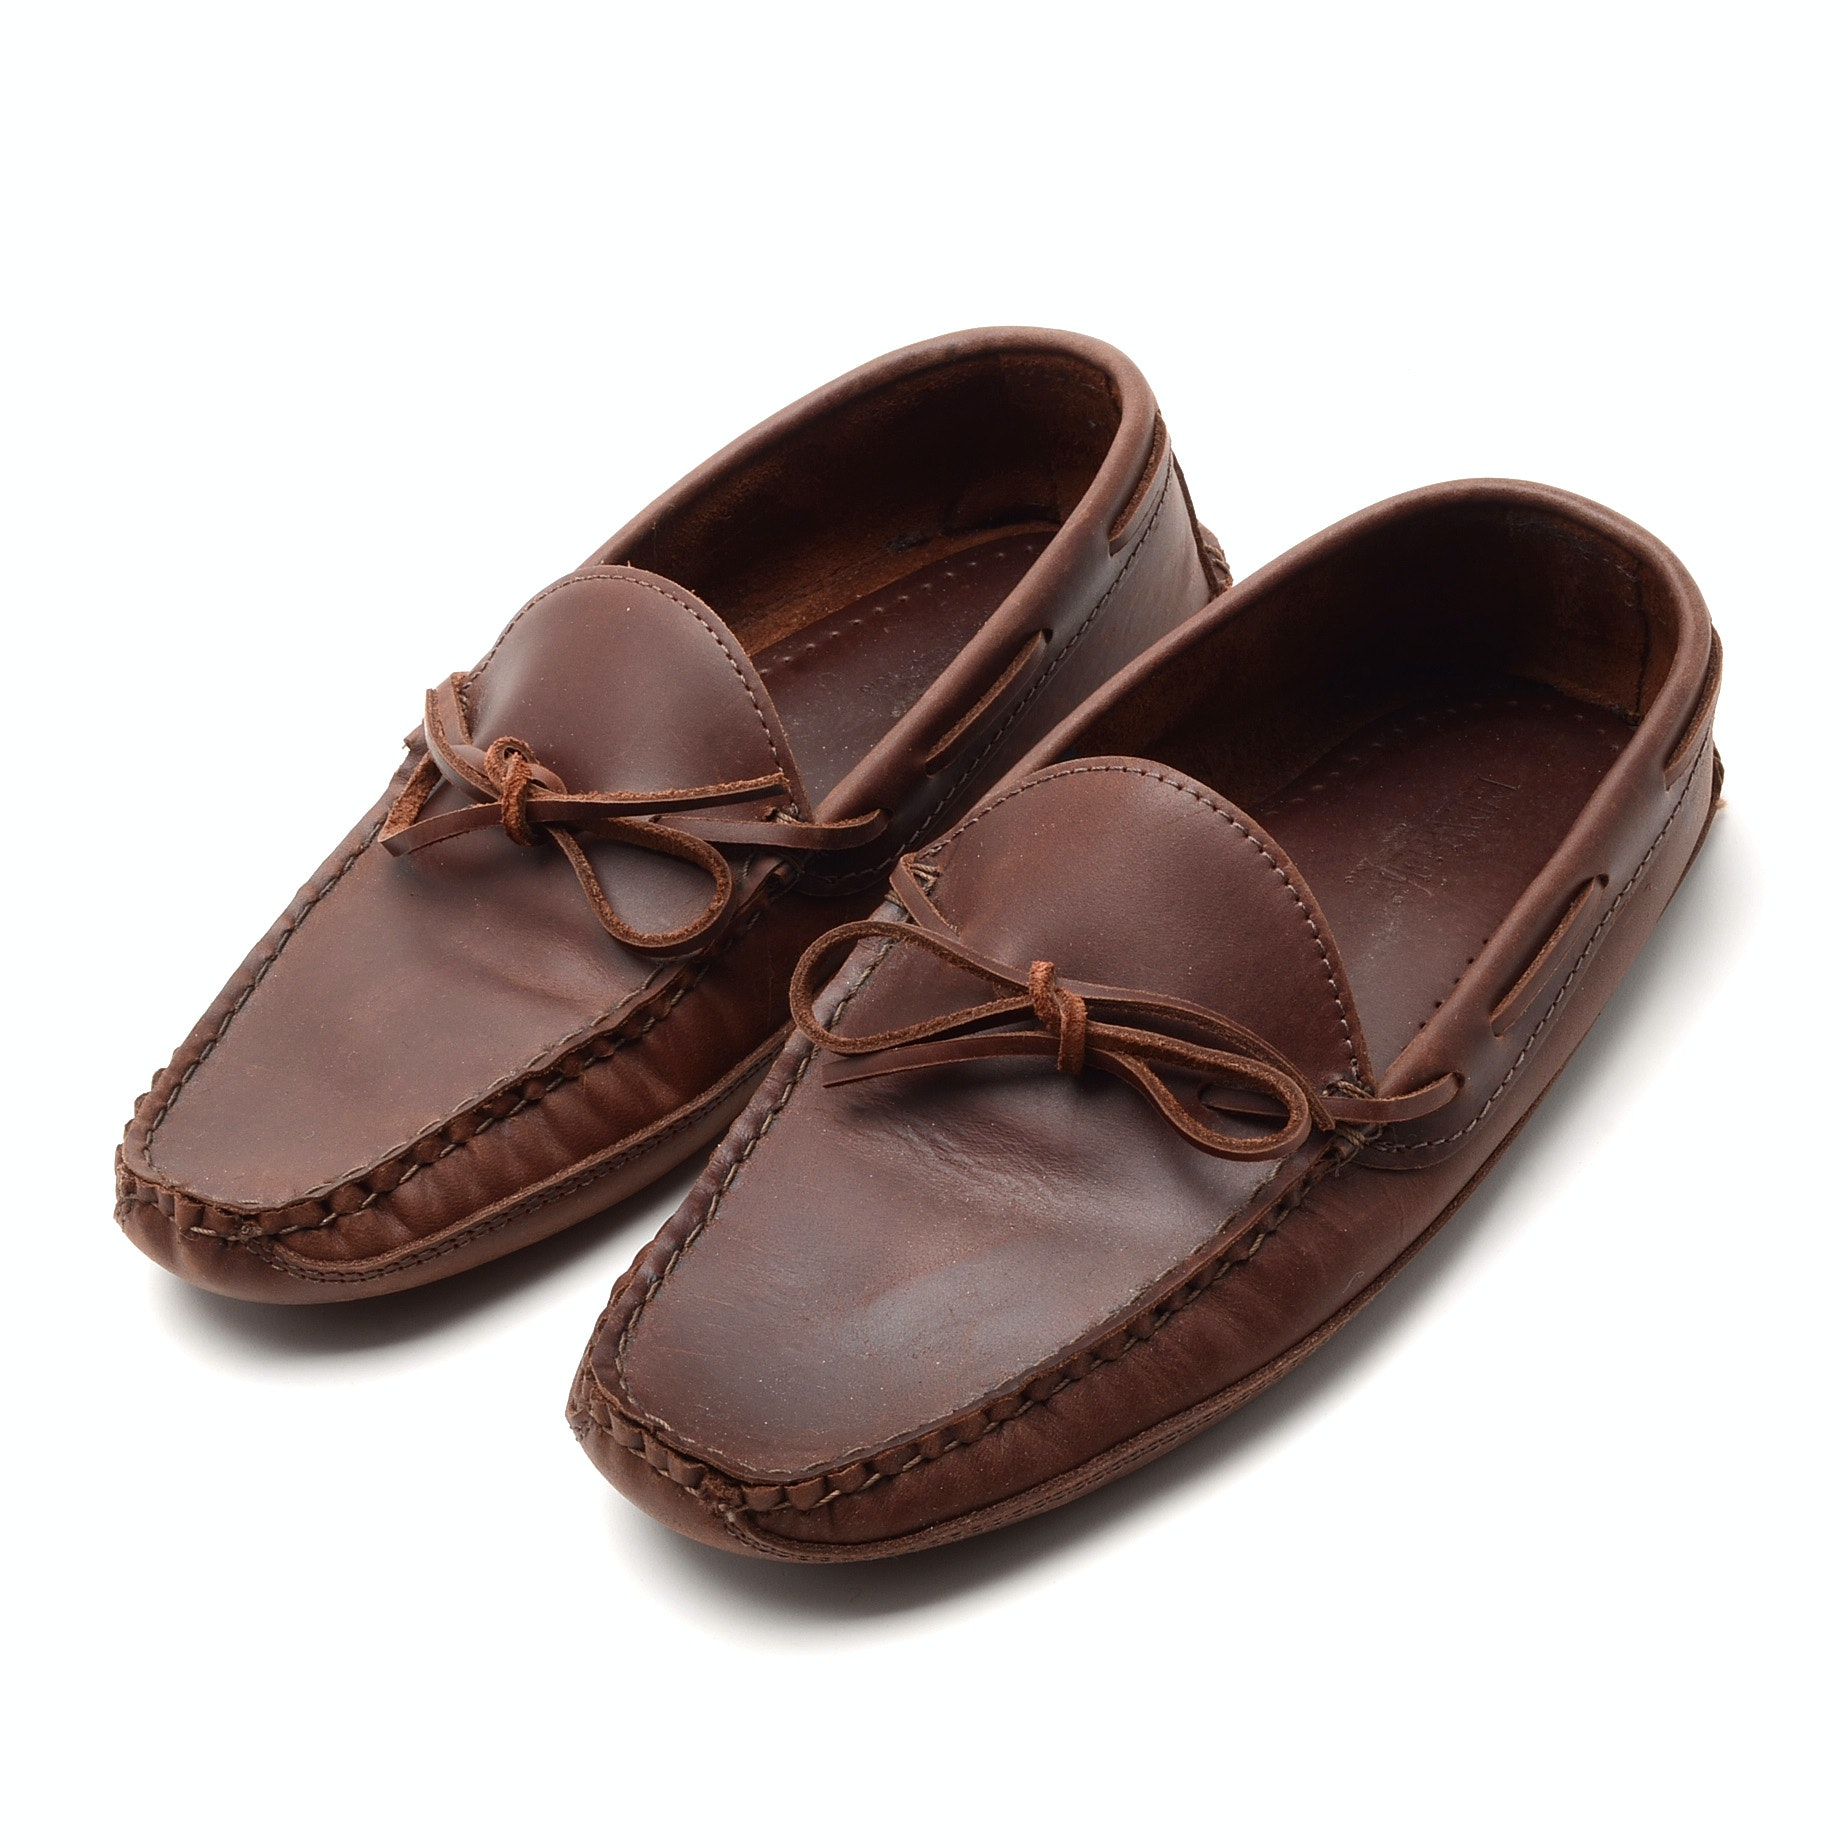 ET. Wright Brown Leather Moccasins